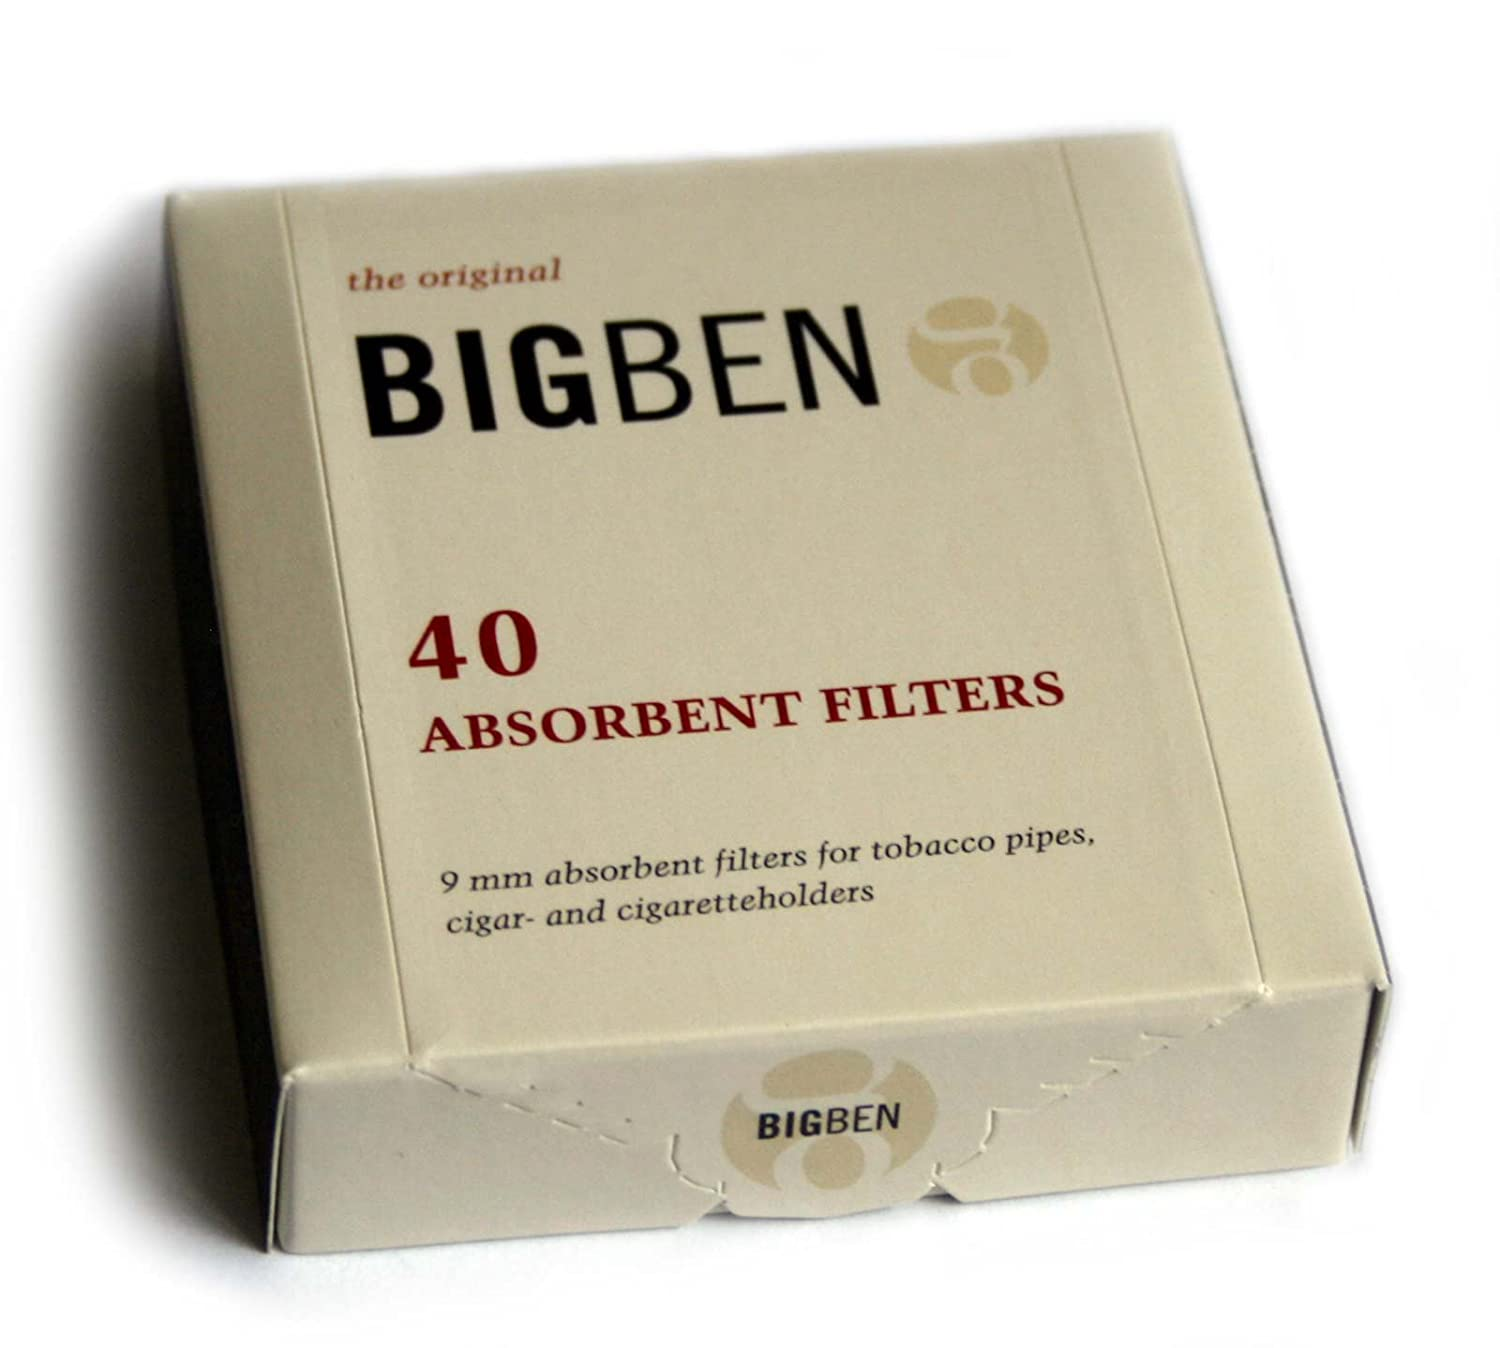 Amazon.com  BIG BEN pipe FILTERS 9mm - box of 40 filters  Other Products  Pet Supplies  sc 1 st  Amazon.com & Amazon.com : BIG BEN pipe FILTERS 9mm - box of 40 filters : Other ...